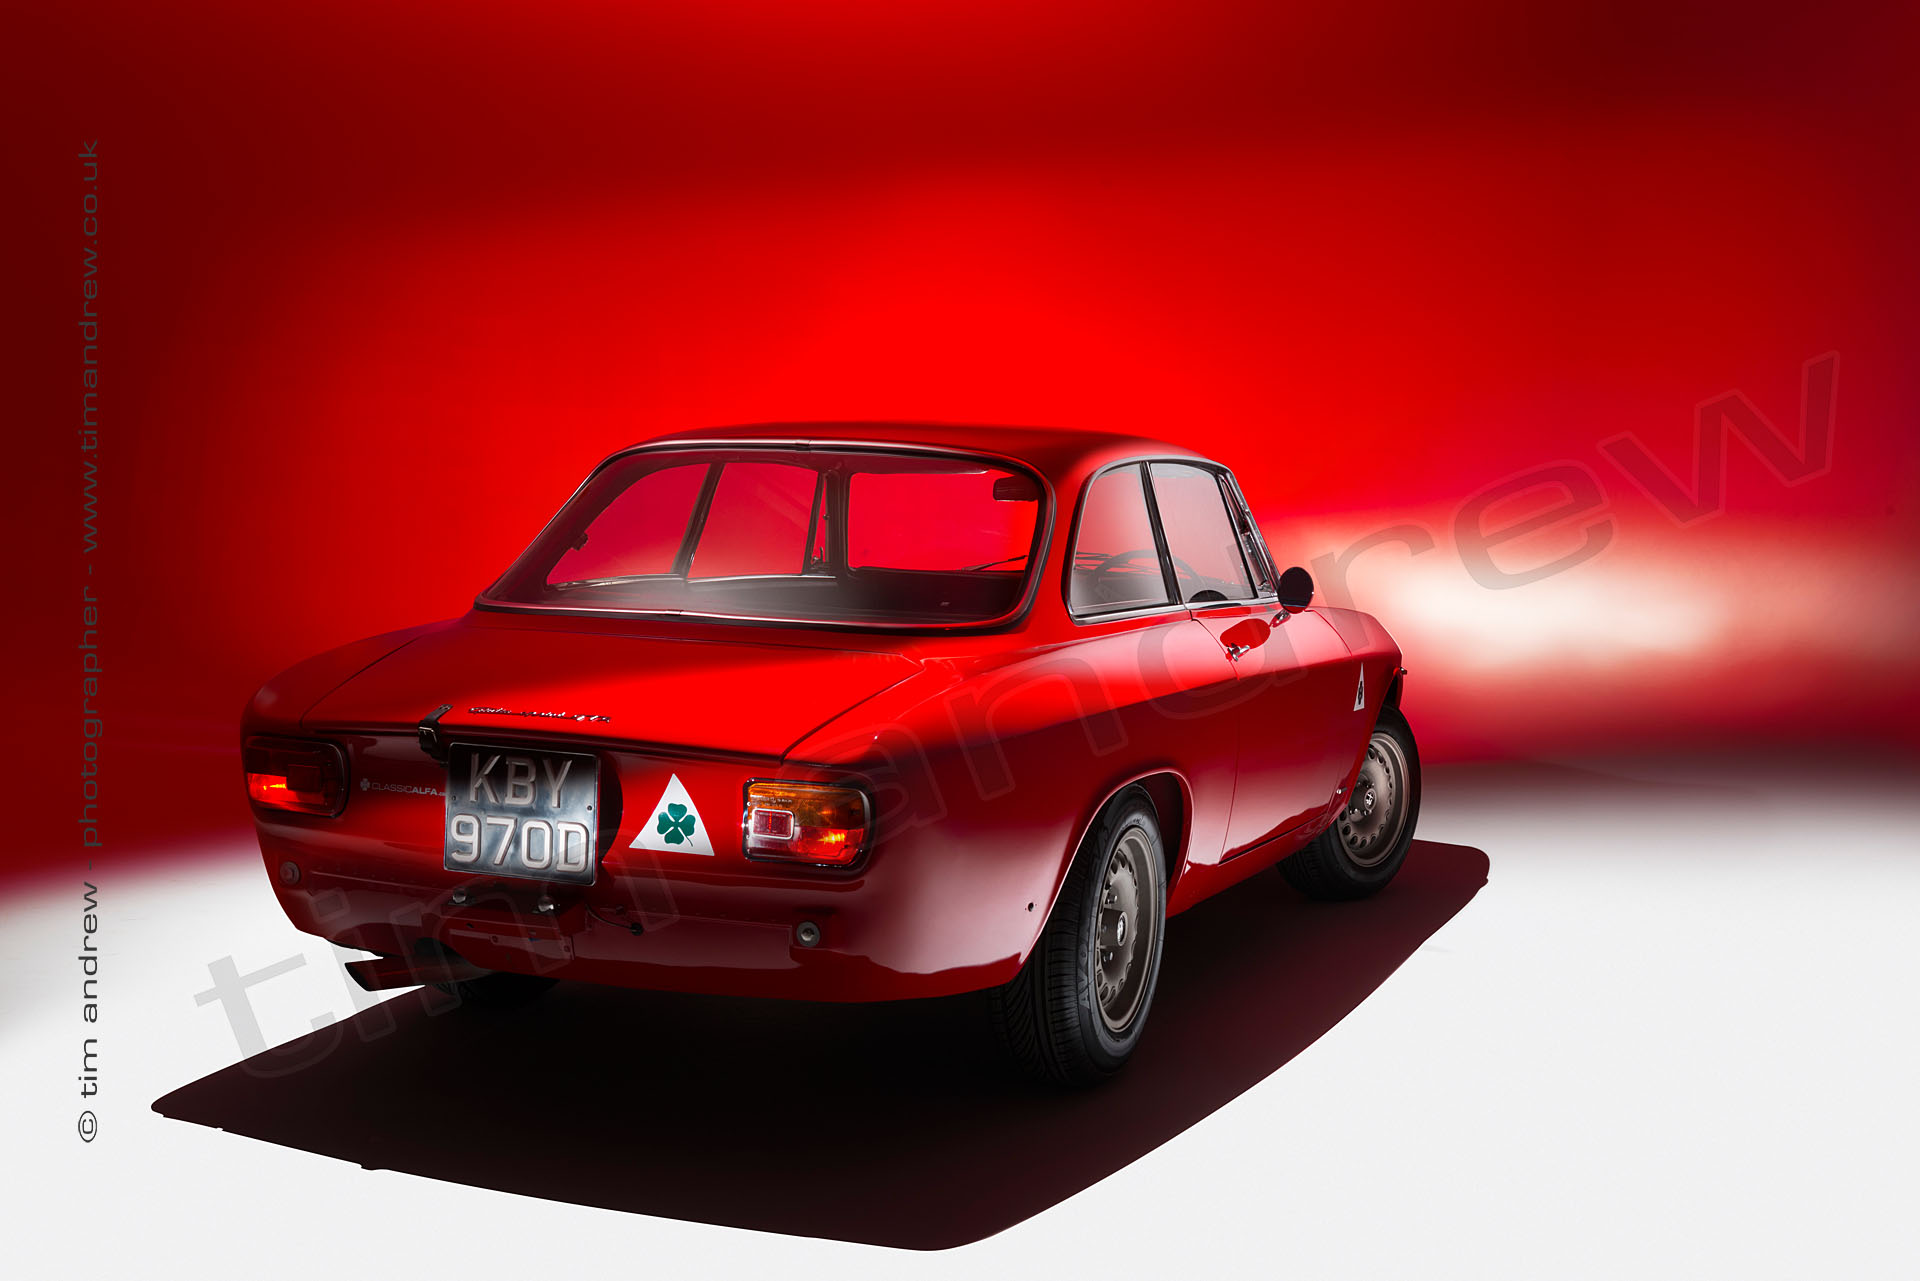 studio shot of old Alfa Romeo